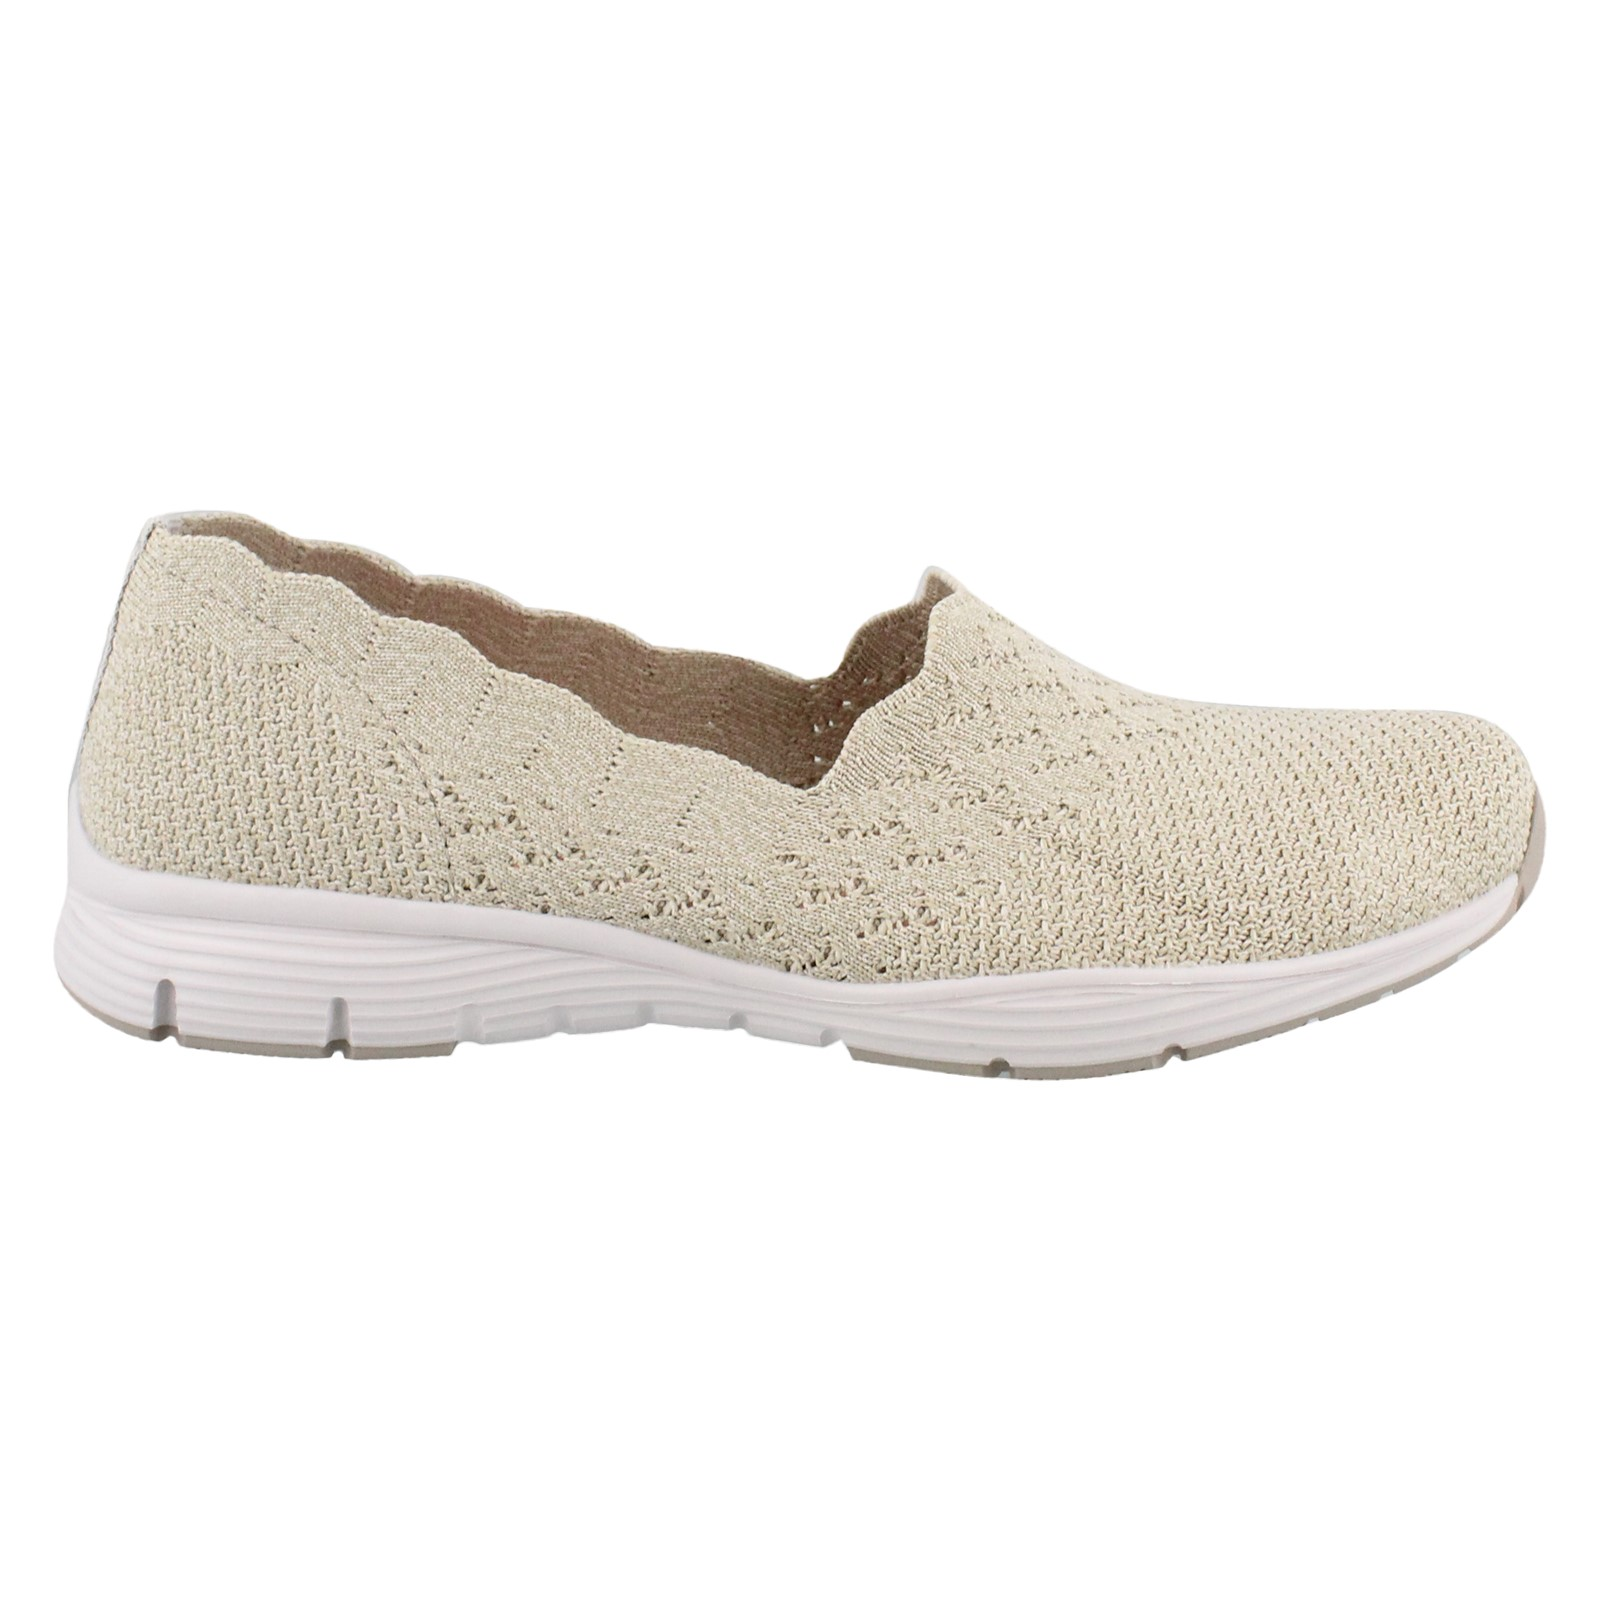 Women's Skechers, Seager Stat Slip on Shoes Wide Width